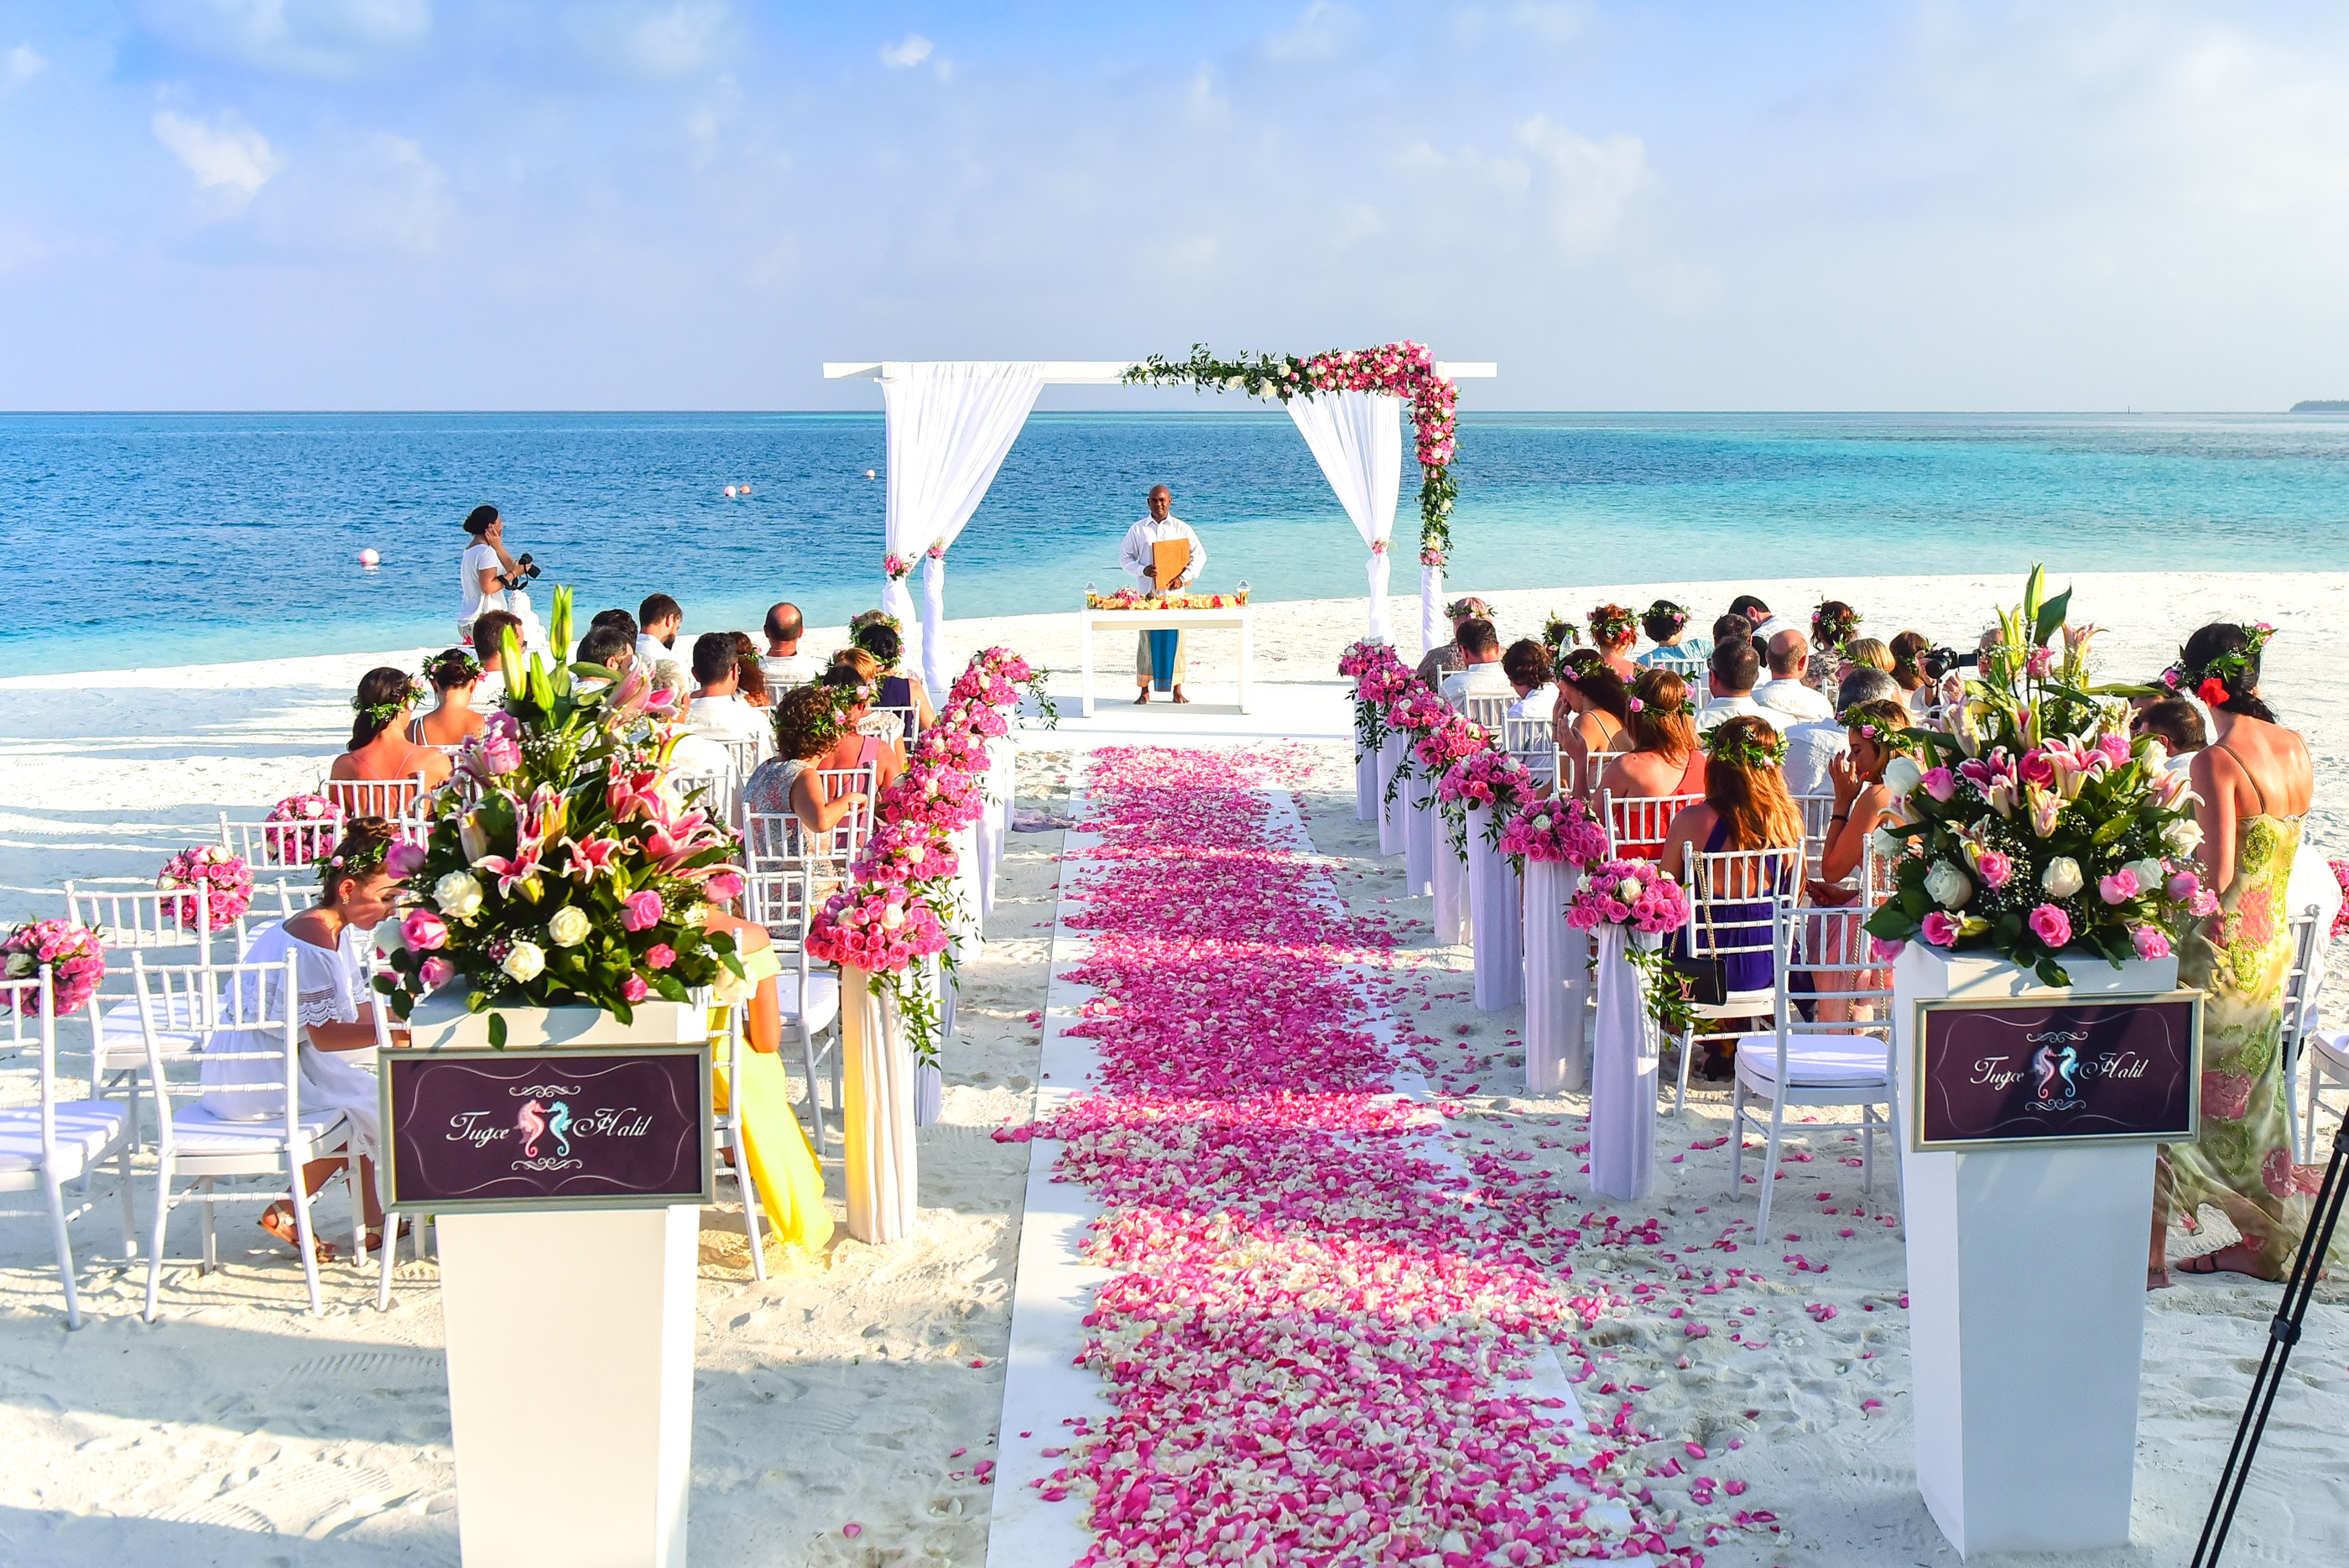 Free photo: Beach Wedding Ceremony during Daytime - Aisle, People, Wedding  Setup - Free Download - Jooinn